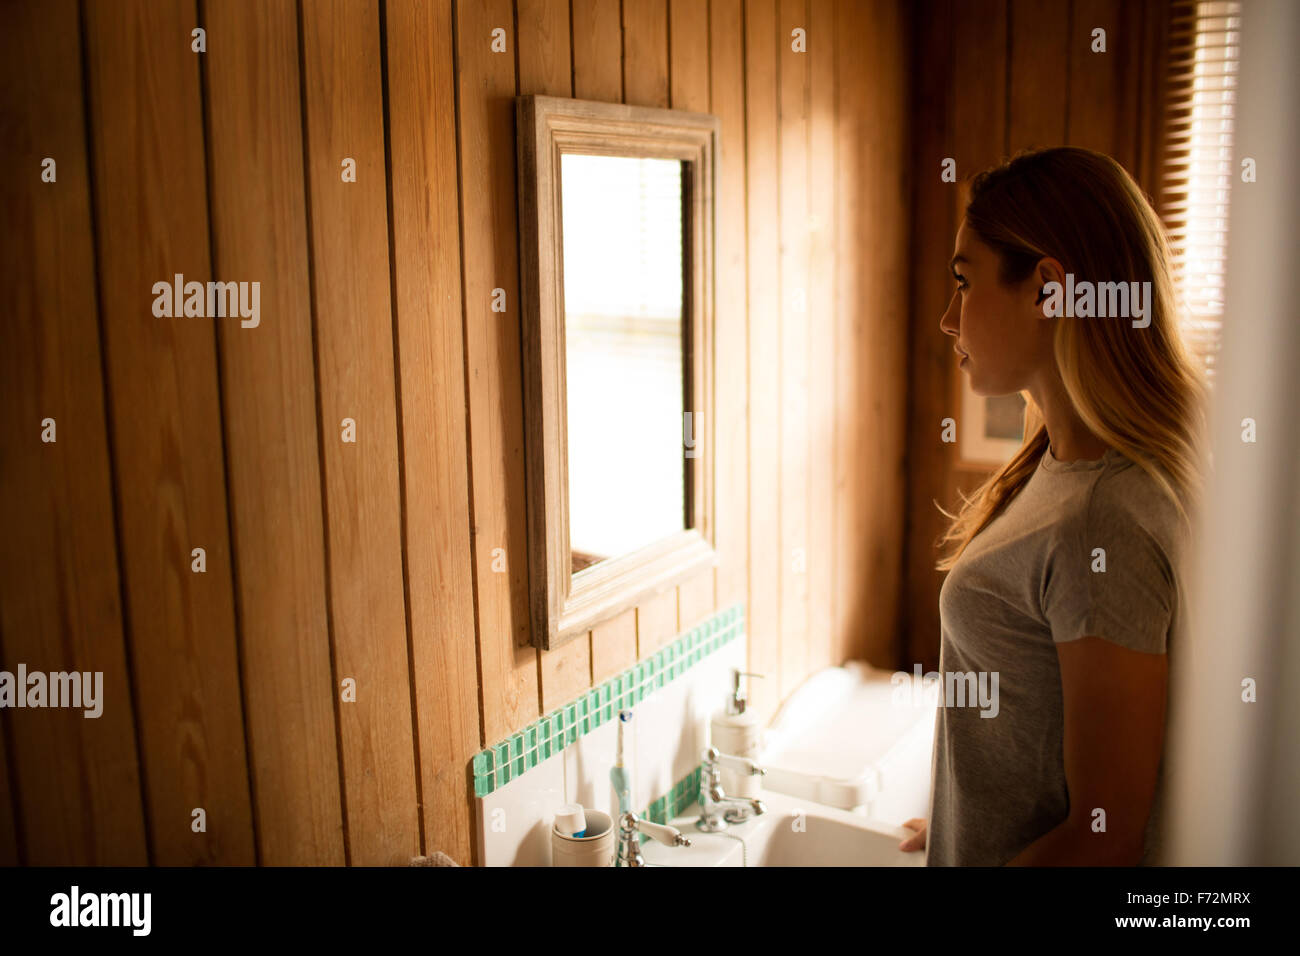 Pretty woman looking at herself in the mirror - Stock Image